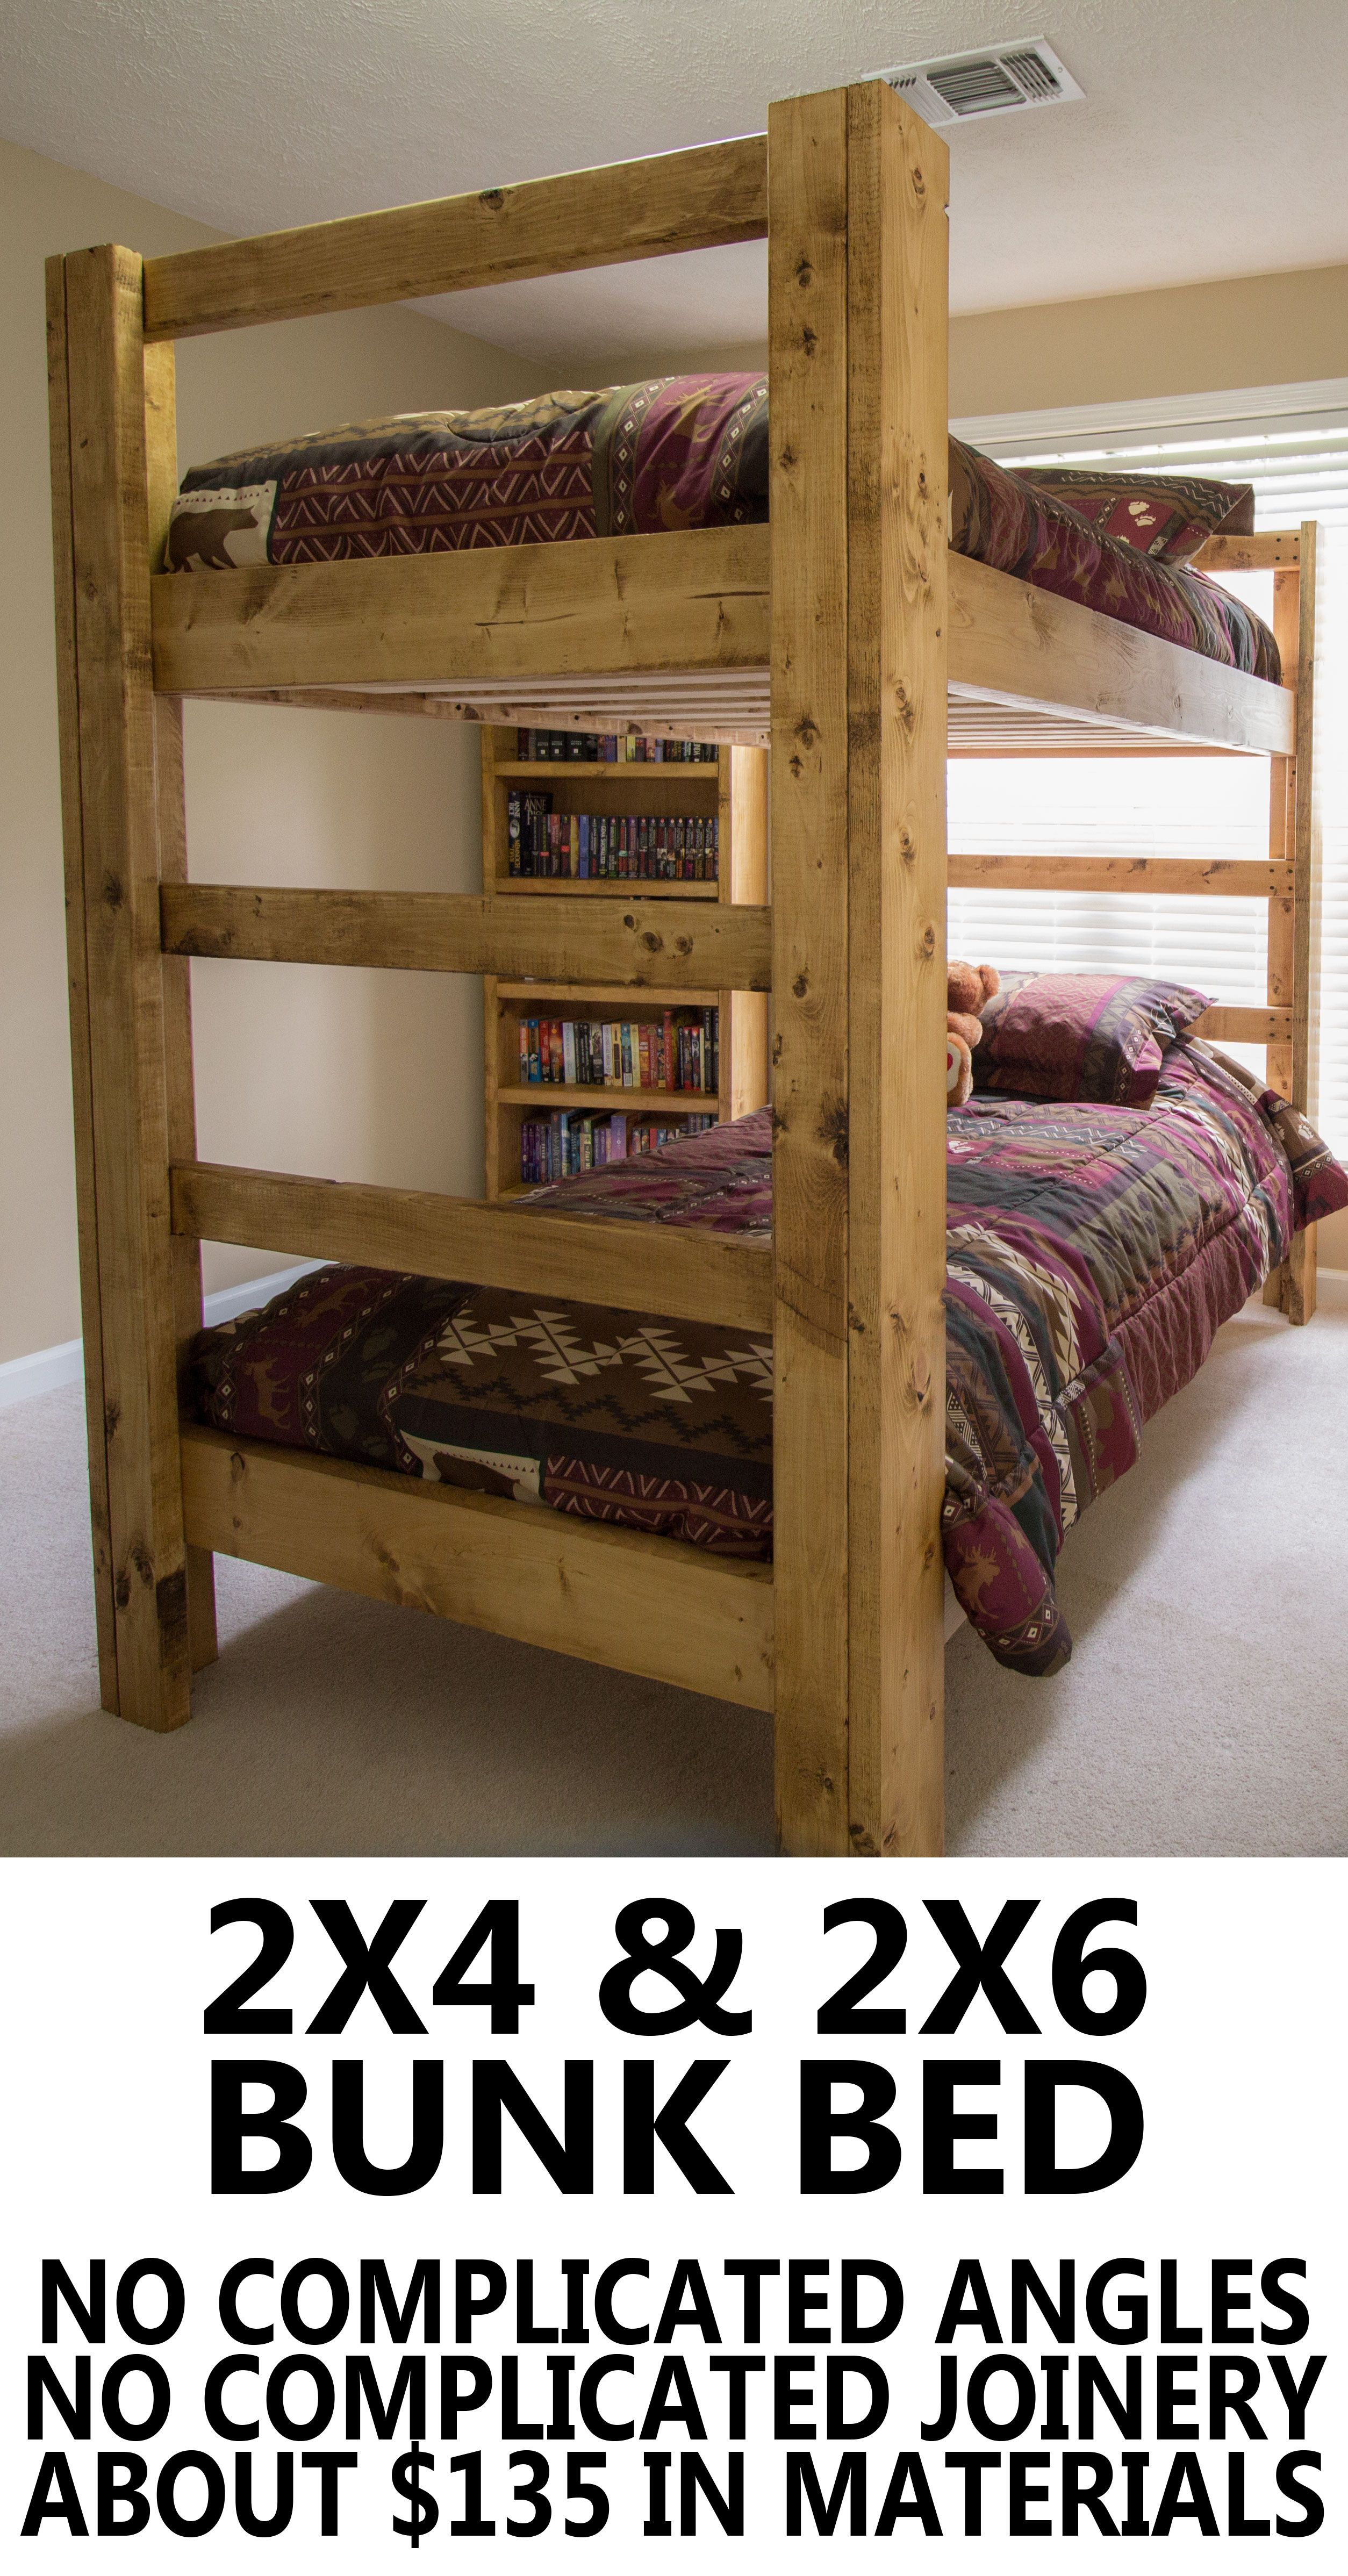 Build A Bunk Bed Diy Bunk Bed Bunk Bed Plans Bunk Beds With Stairs